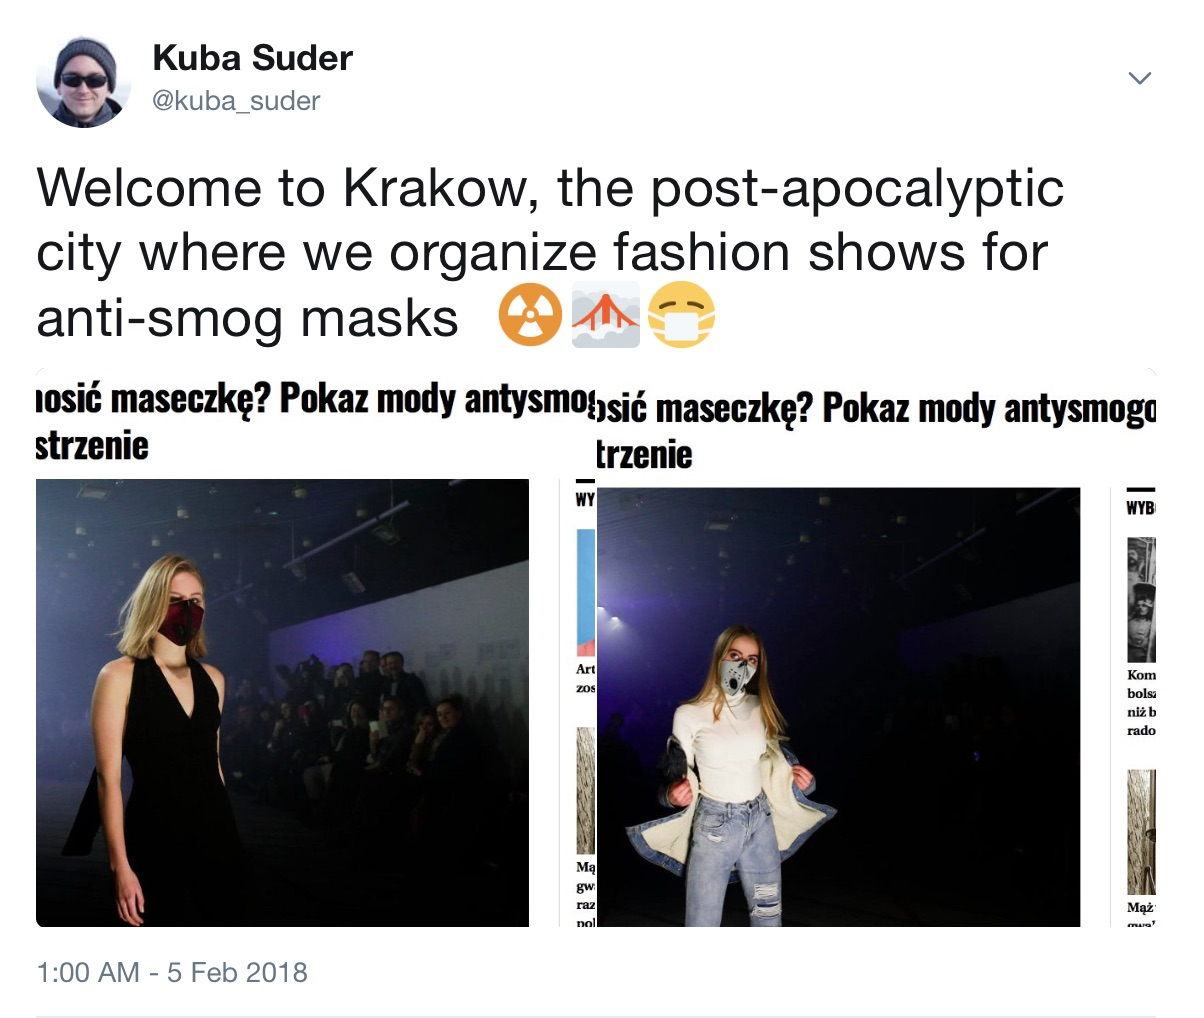 Welcome to Krakow, the post-apocalyptic city where we organize fashion shows for anti-smog masks